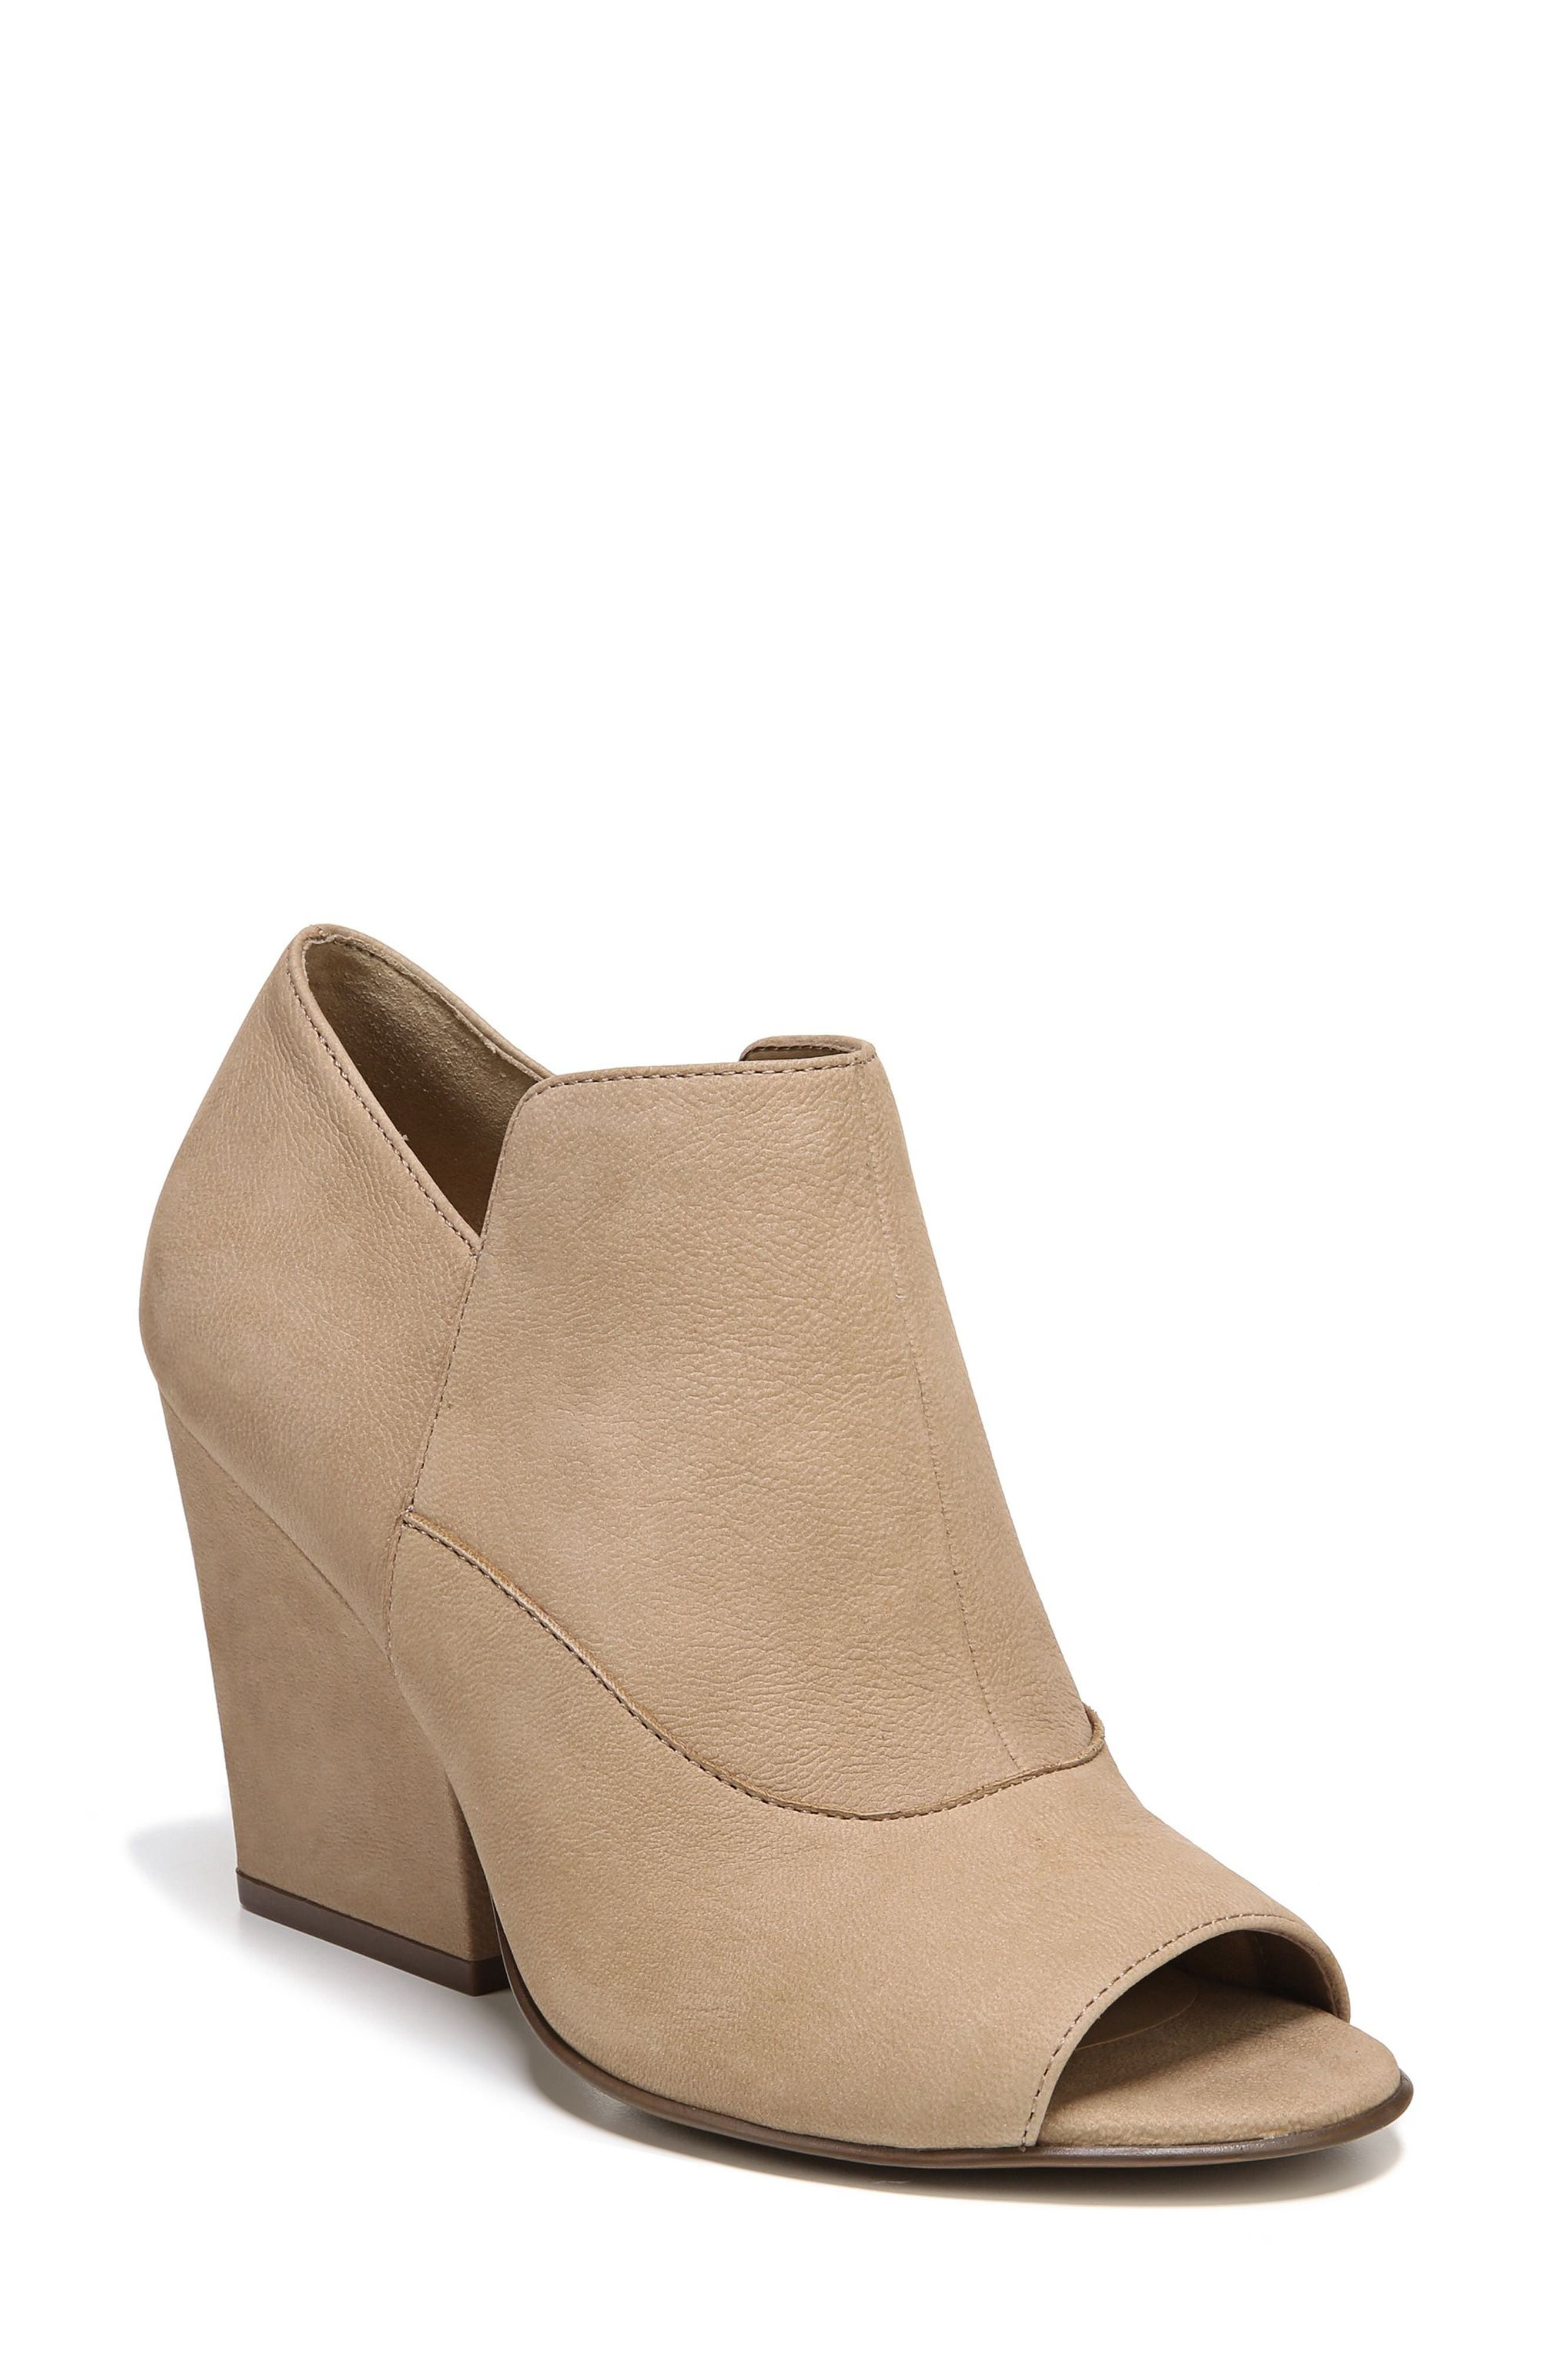 Skylar Open Toe Bootie,                             Main thumbnail 1, color,                             Barley Nubuck